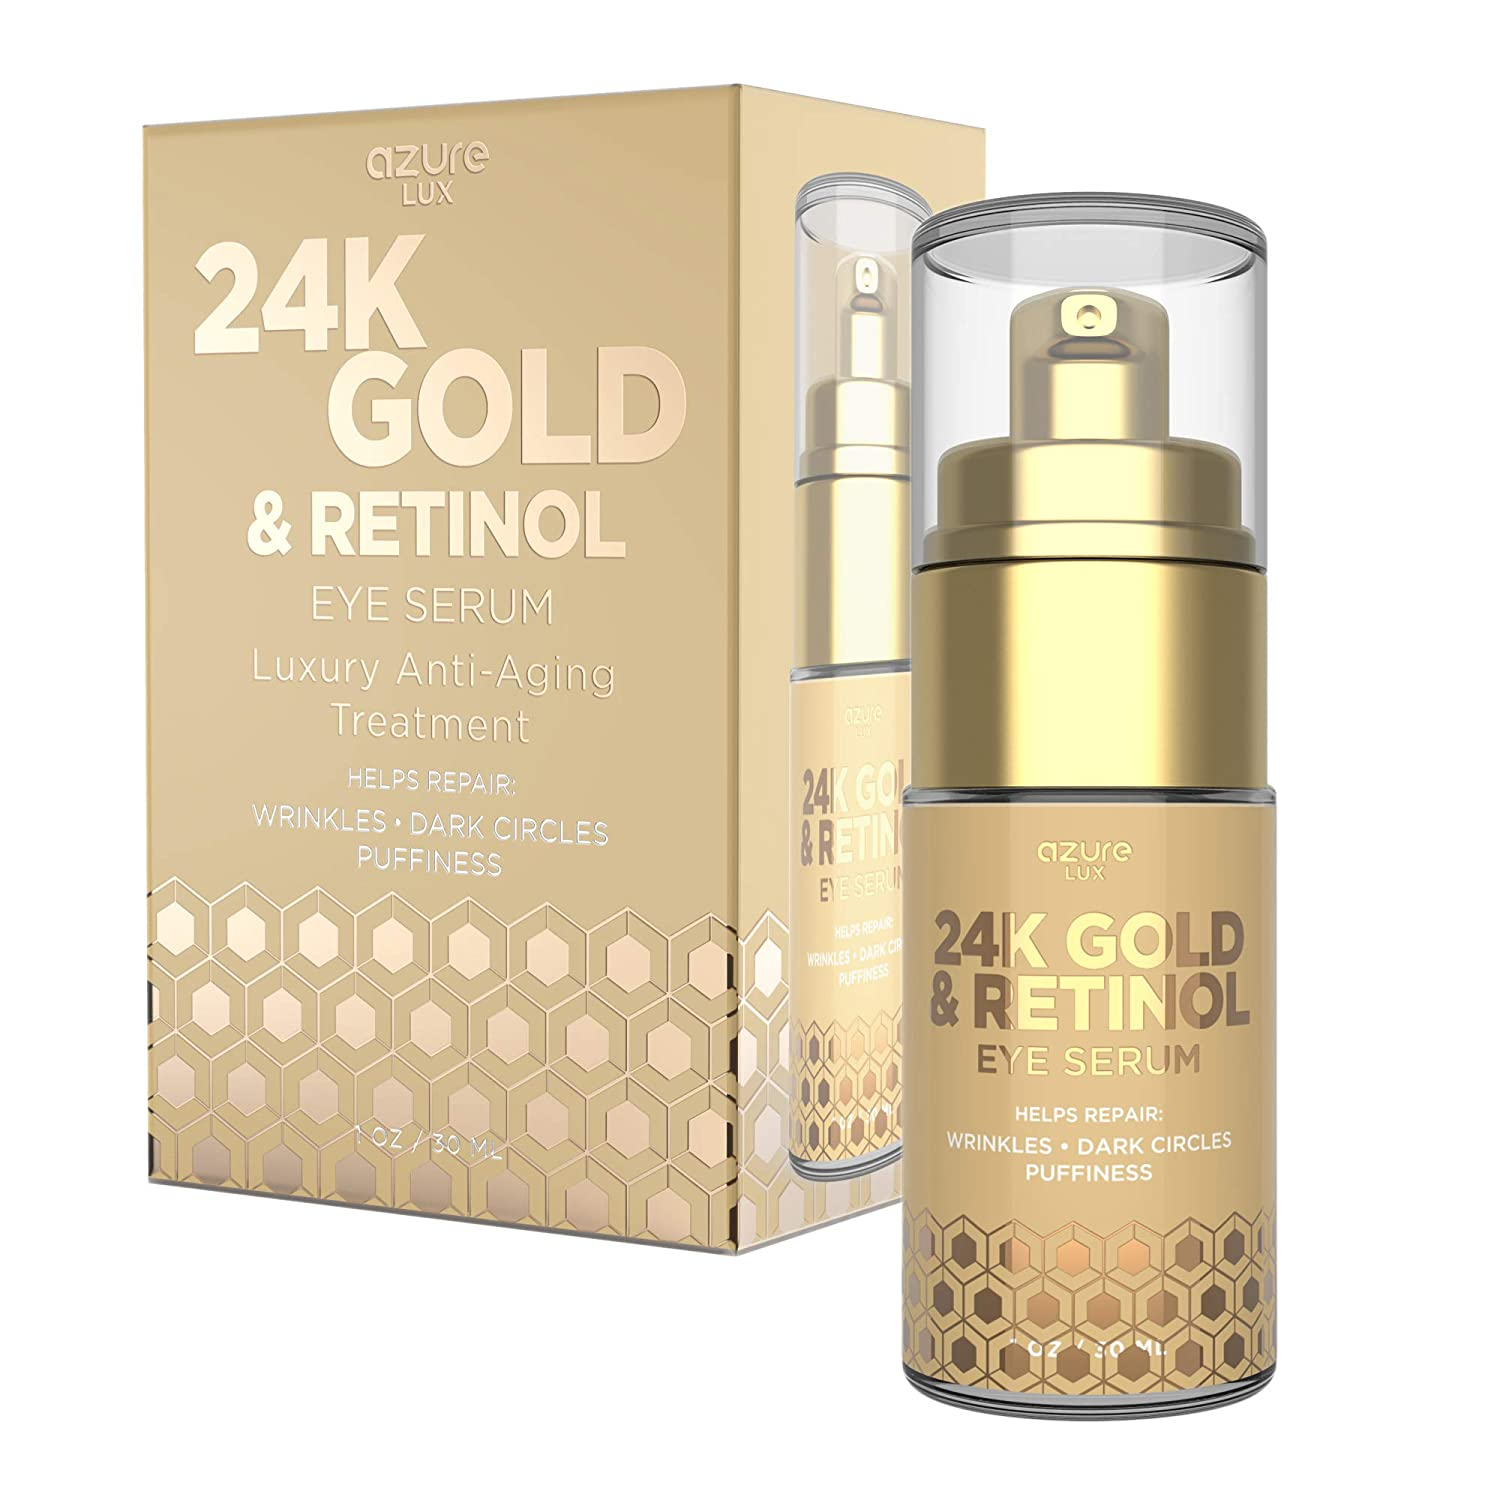 AZURE 24K Gold & Retinol Luxury Anti Aging Eye Serum - Lifting, Firms & Toning | Reduces Wrinkle, Fine Lines & Crow's Feet | Hydrates, Minimizing Signs of Fatigue & Dark Circles - 30mL